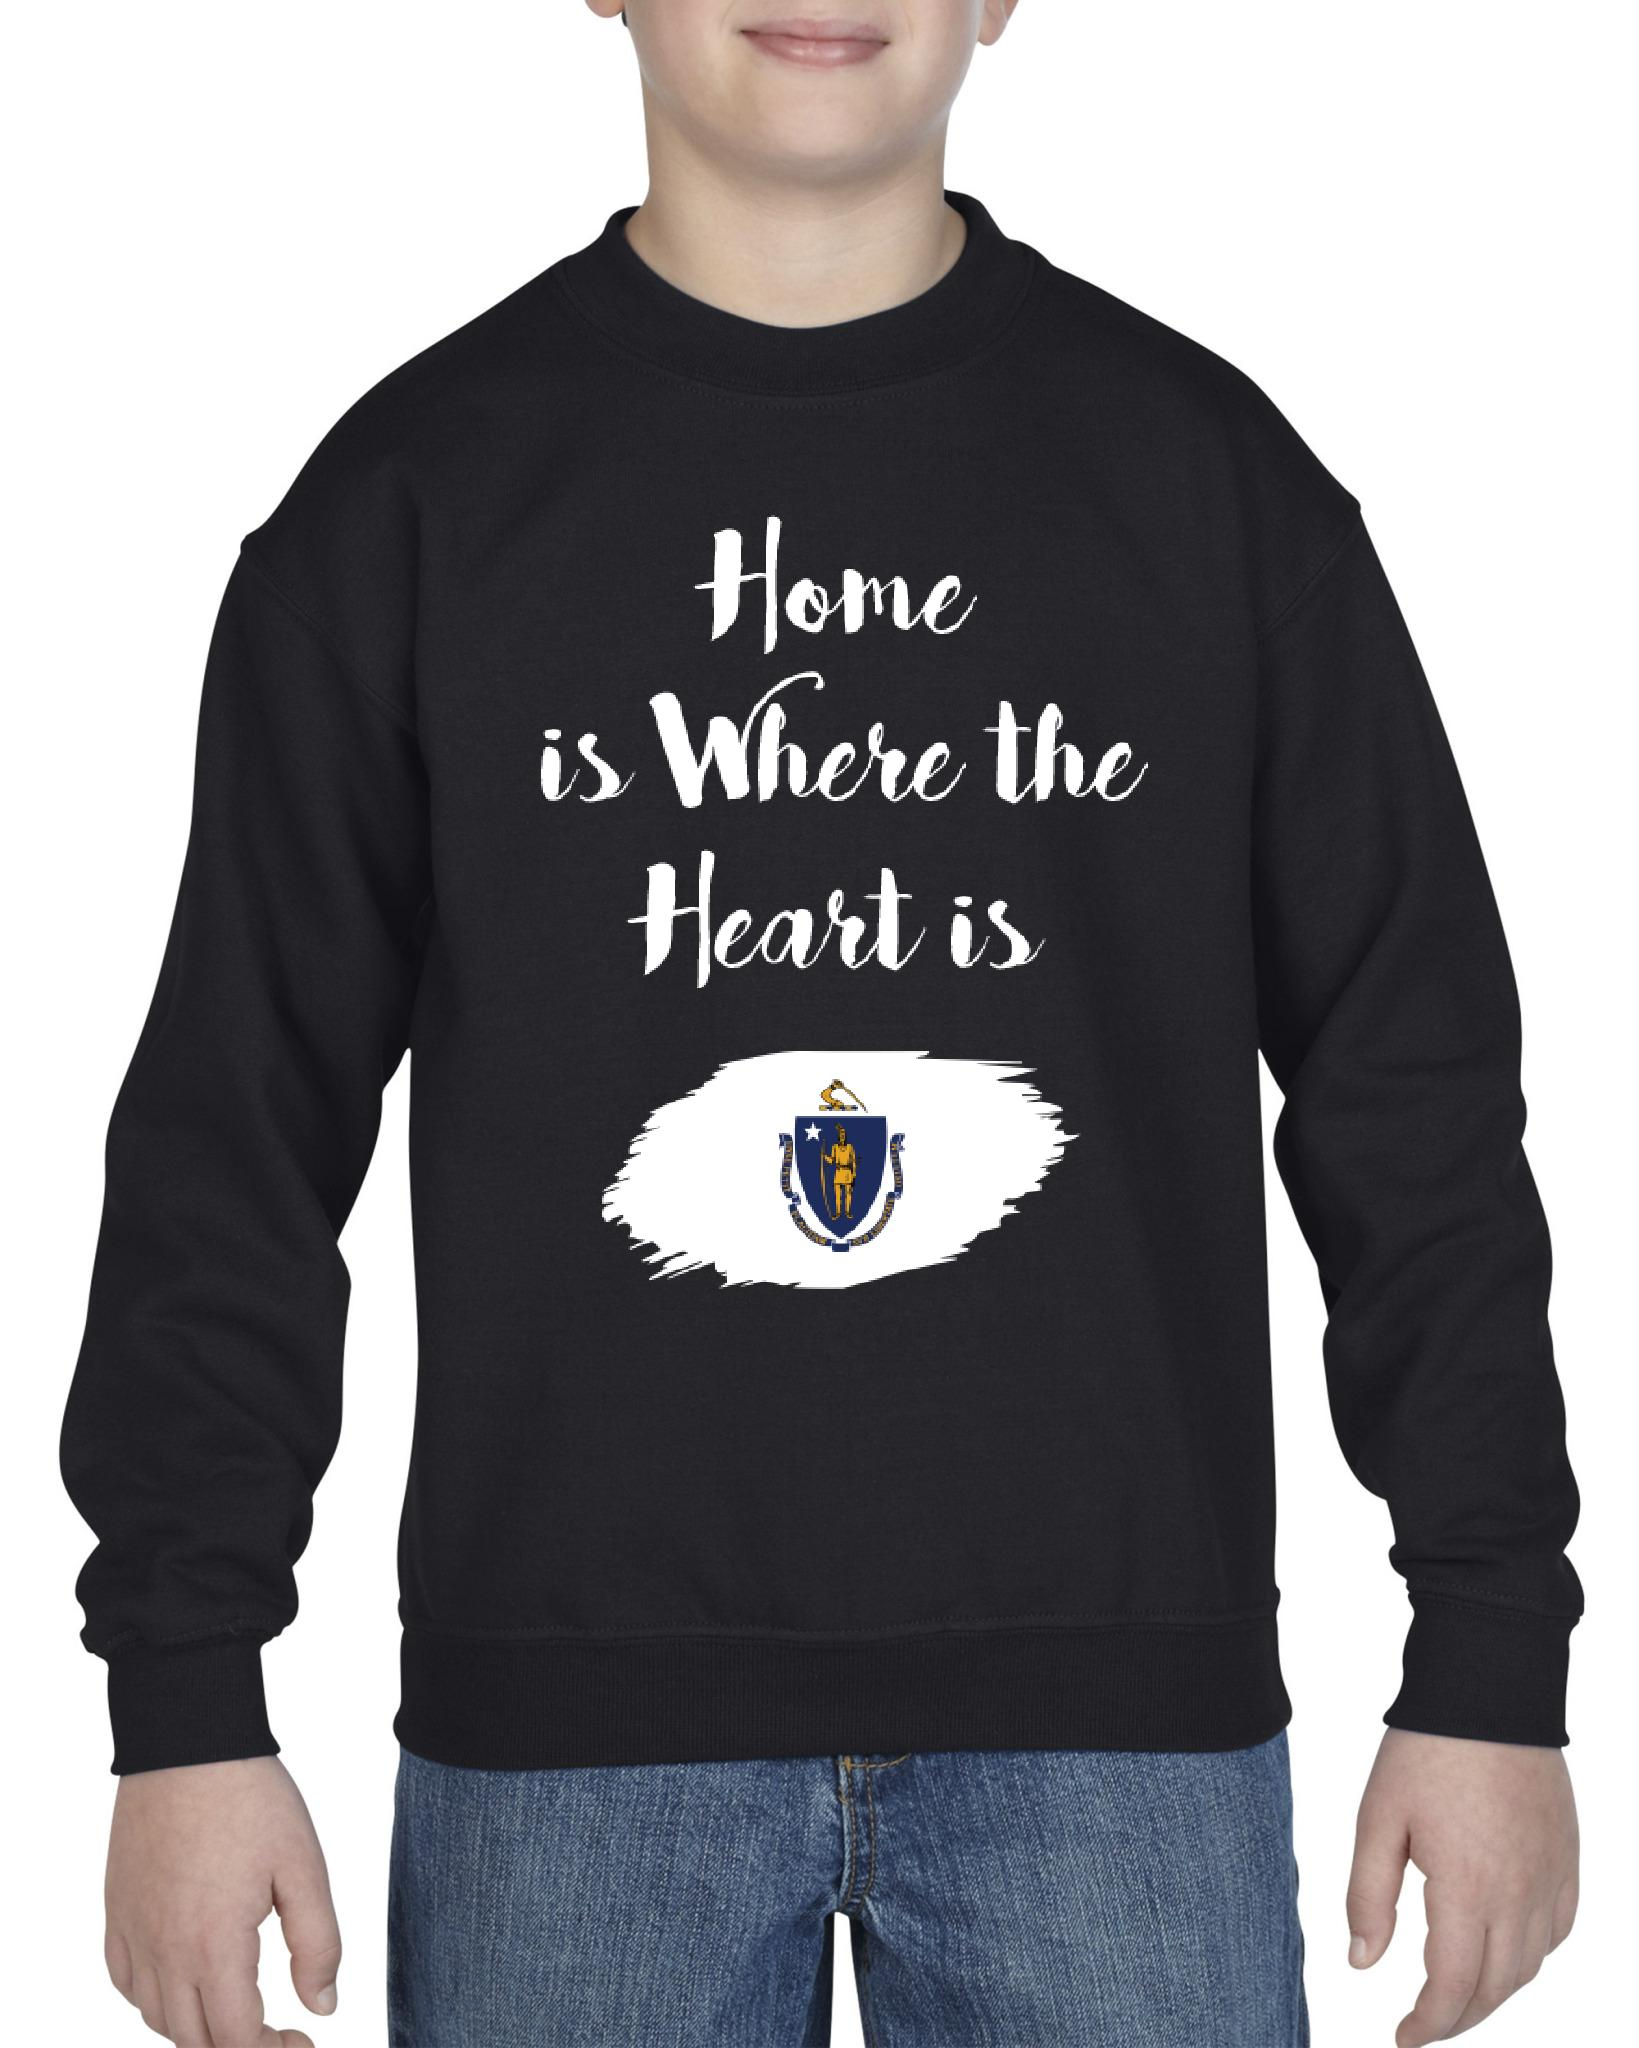 Home is Where the heart is Massachusetts Unisex Youth Crewneck Massachusetts Sweatshirts